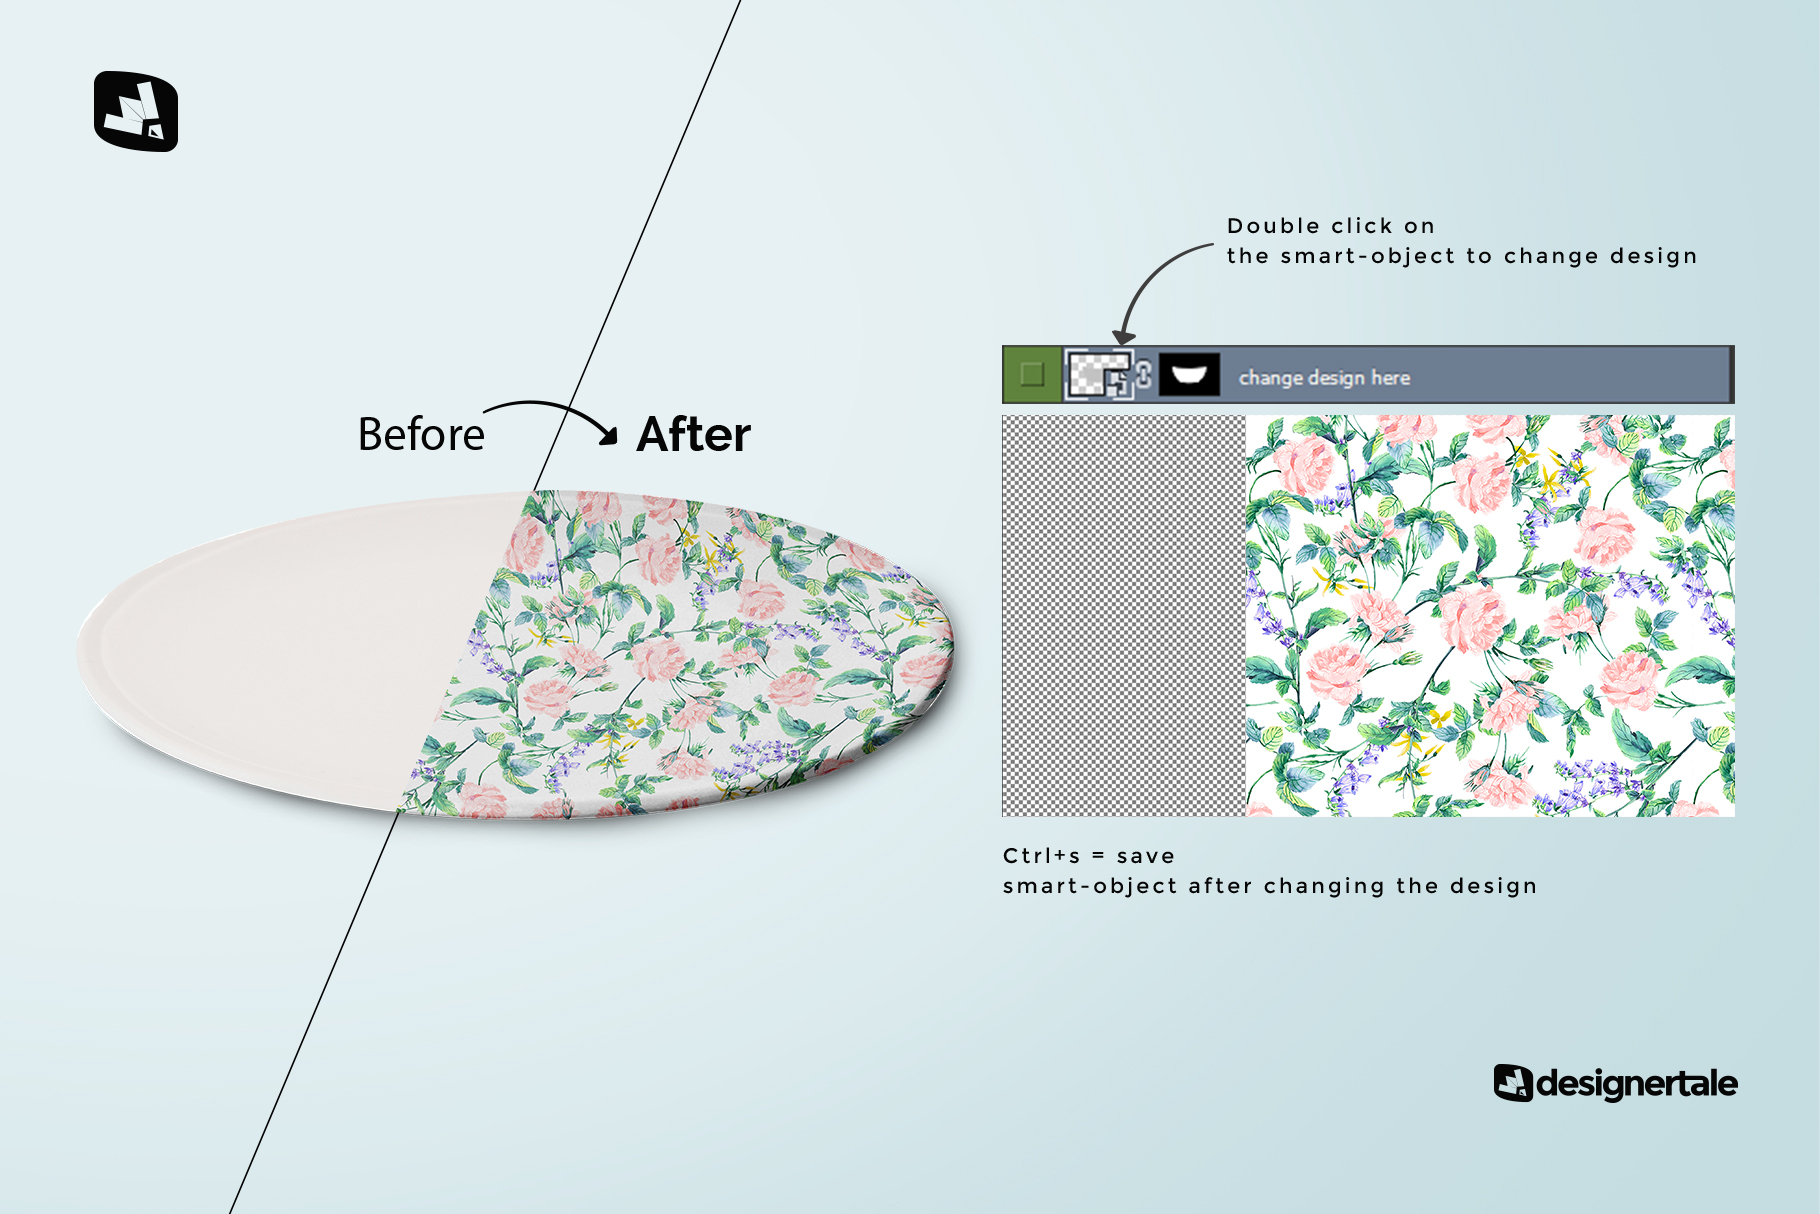 how to change design of the single ceramic dinner plate mockup